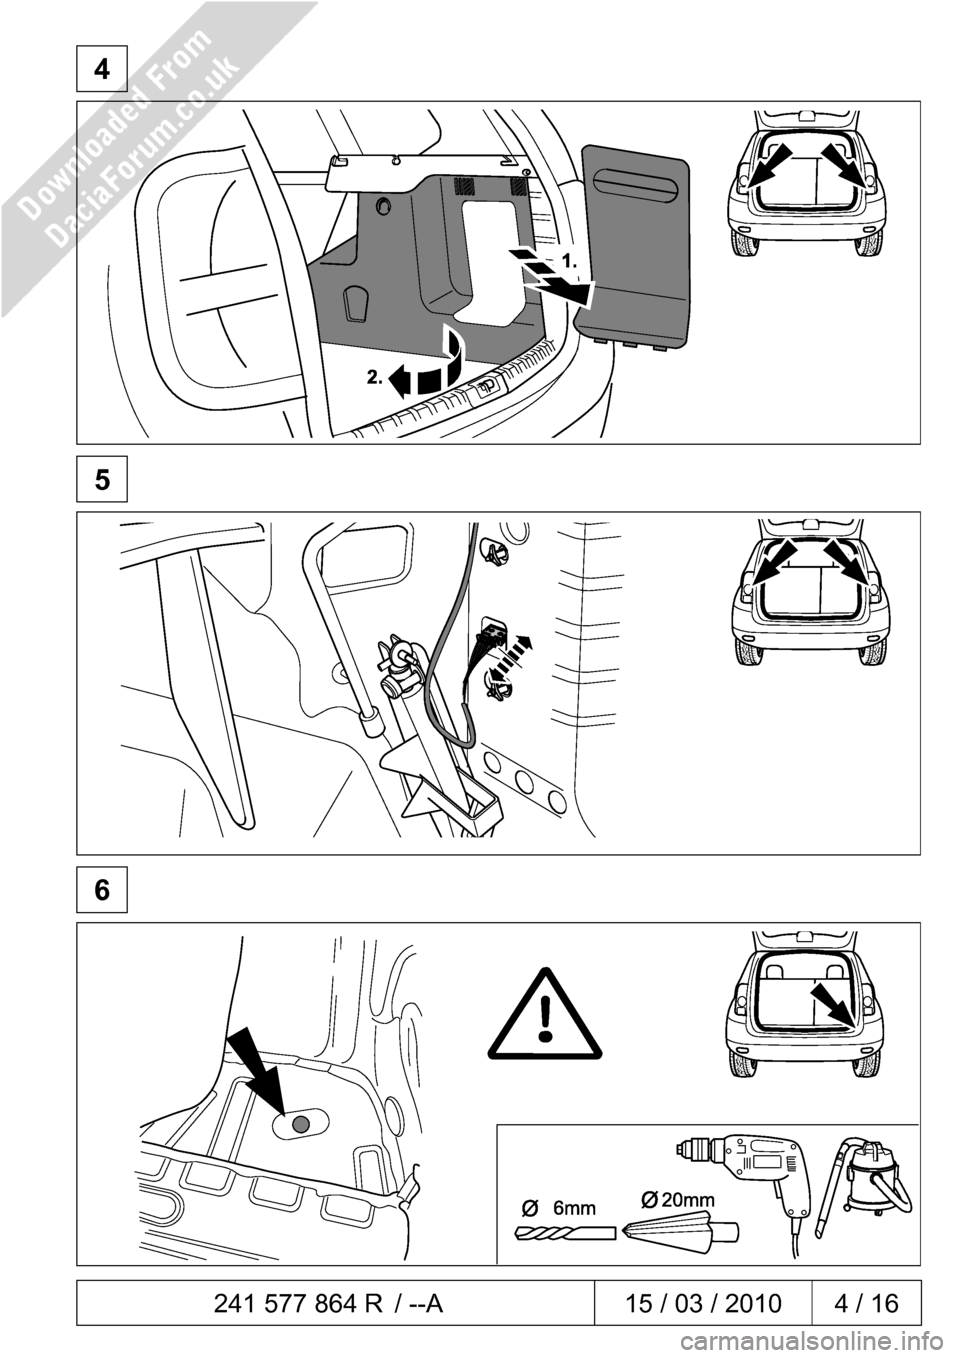 DACIA DUSTER 2010 1.G 7 Pin Towbar Fitting Guide Workshop Manual  241 577 864 R / --A  15 / 03 / 2010  4 / 16     4              5              6